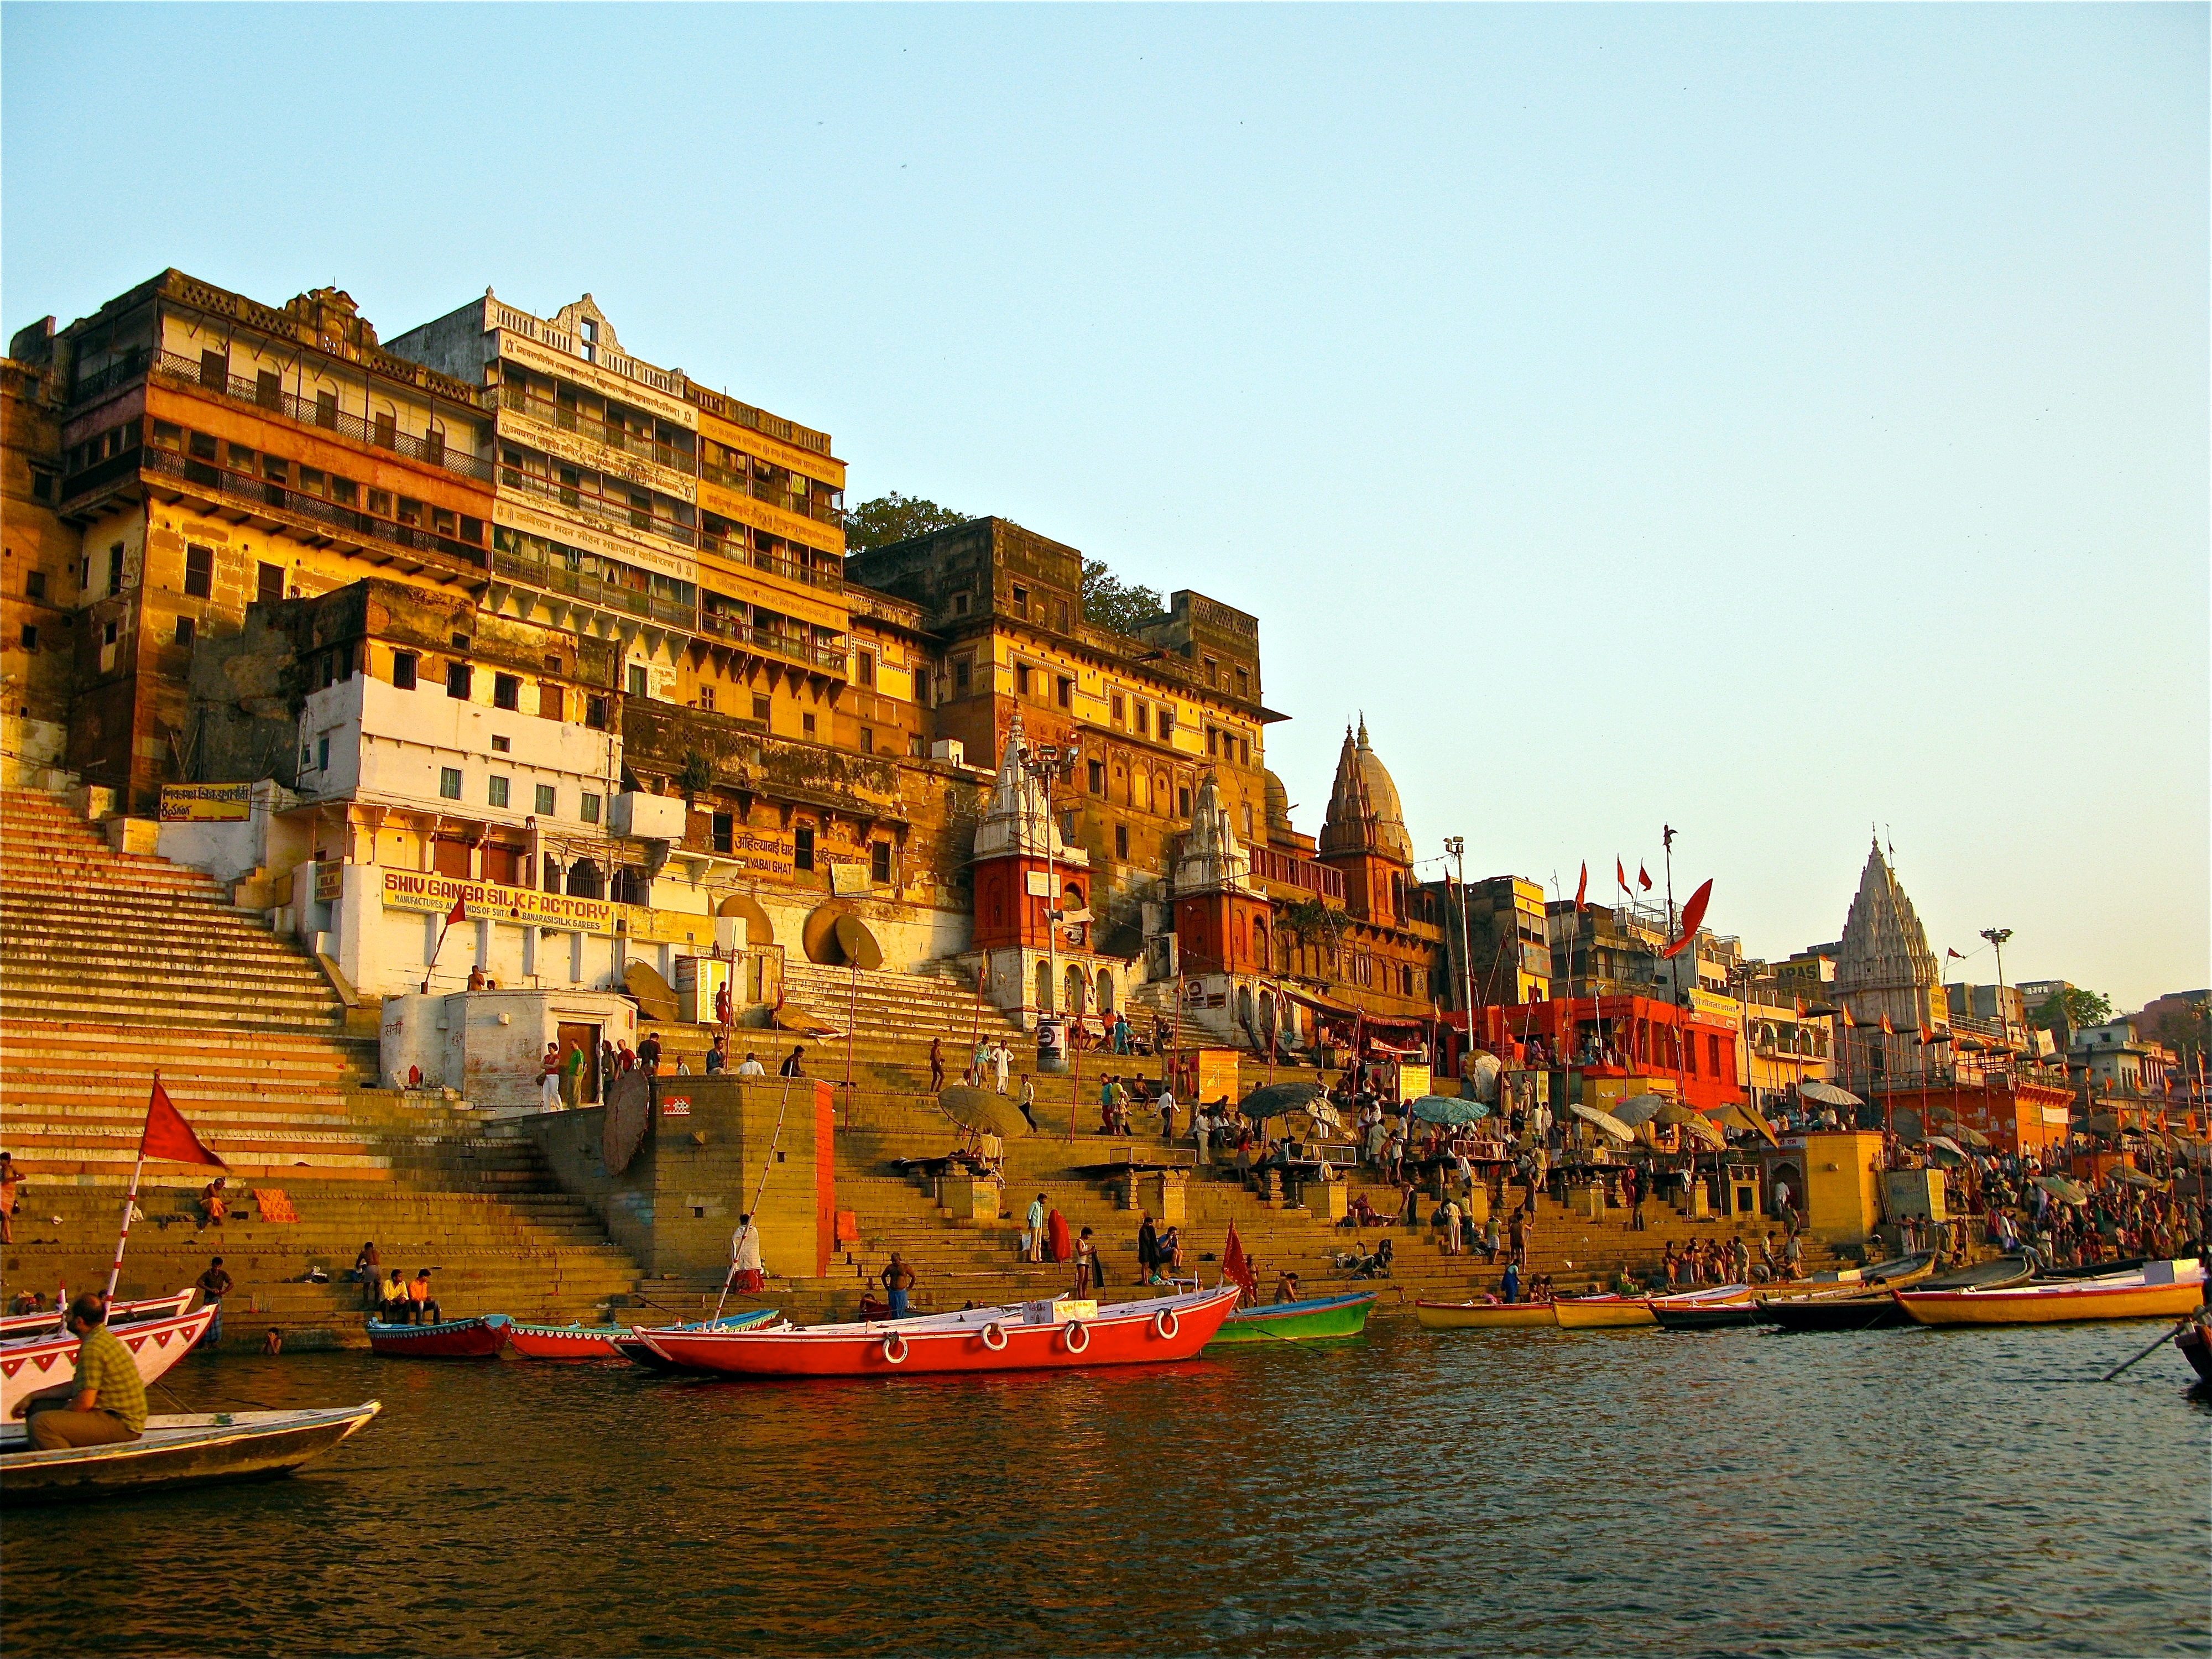 Varanasi real estate to get a shot in the arm post Modi's win